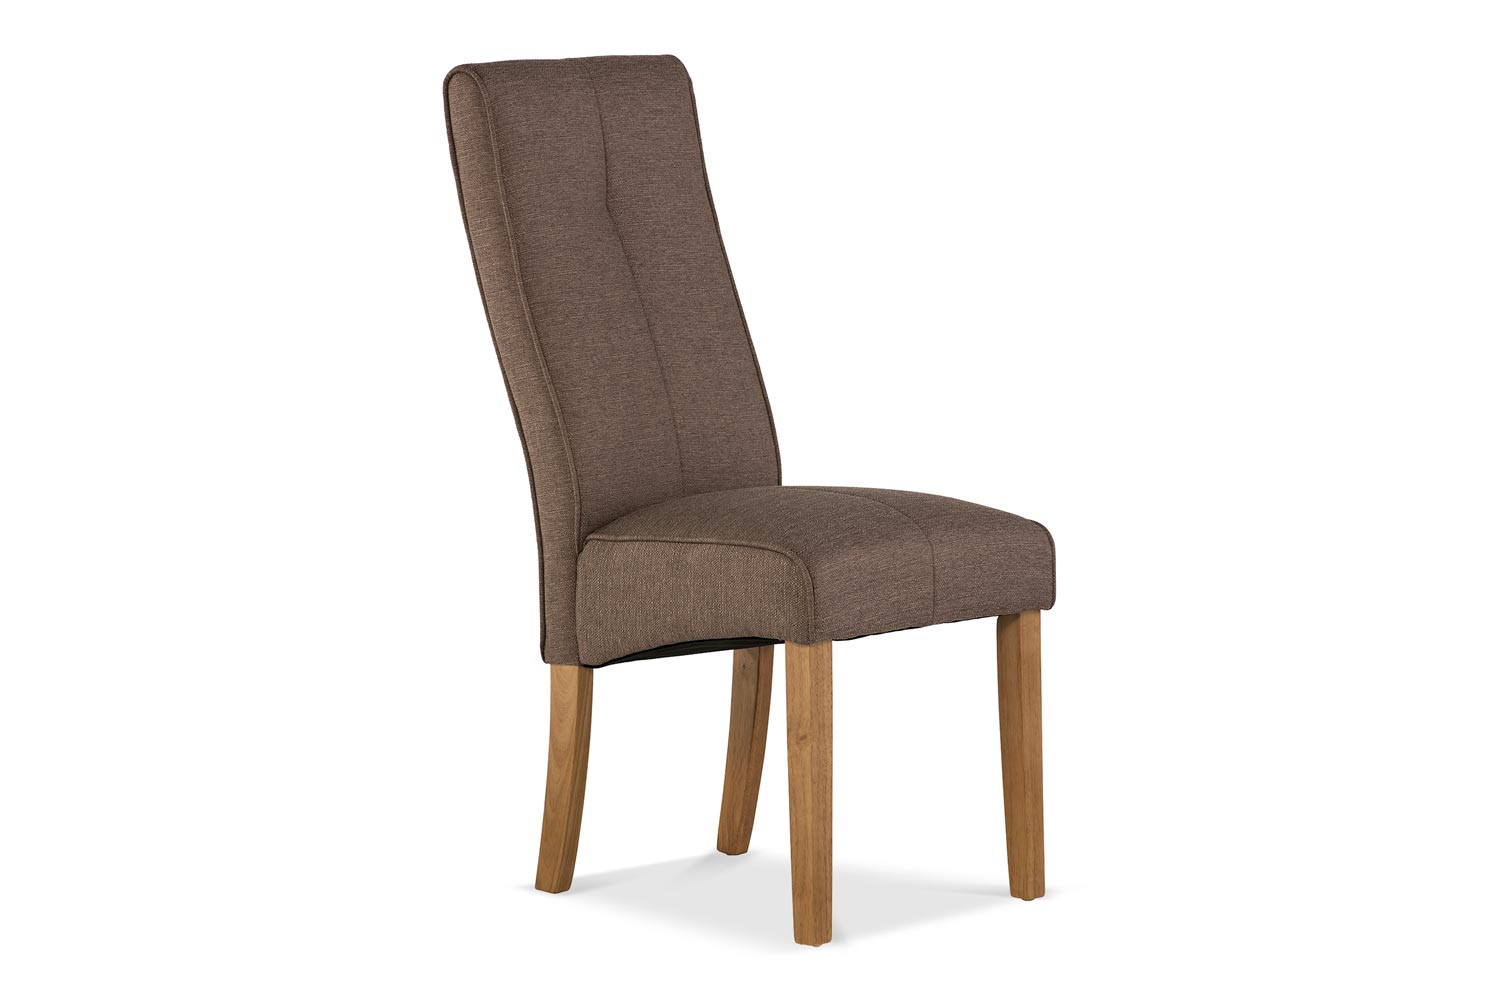 Taupe Dining Chairs Mabel Dining Chair Oak Leg Taupe Ireland